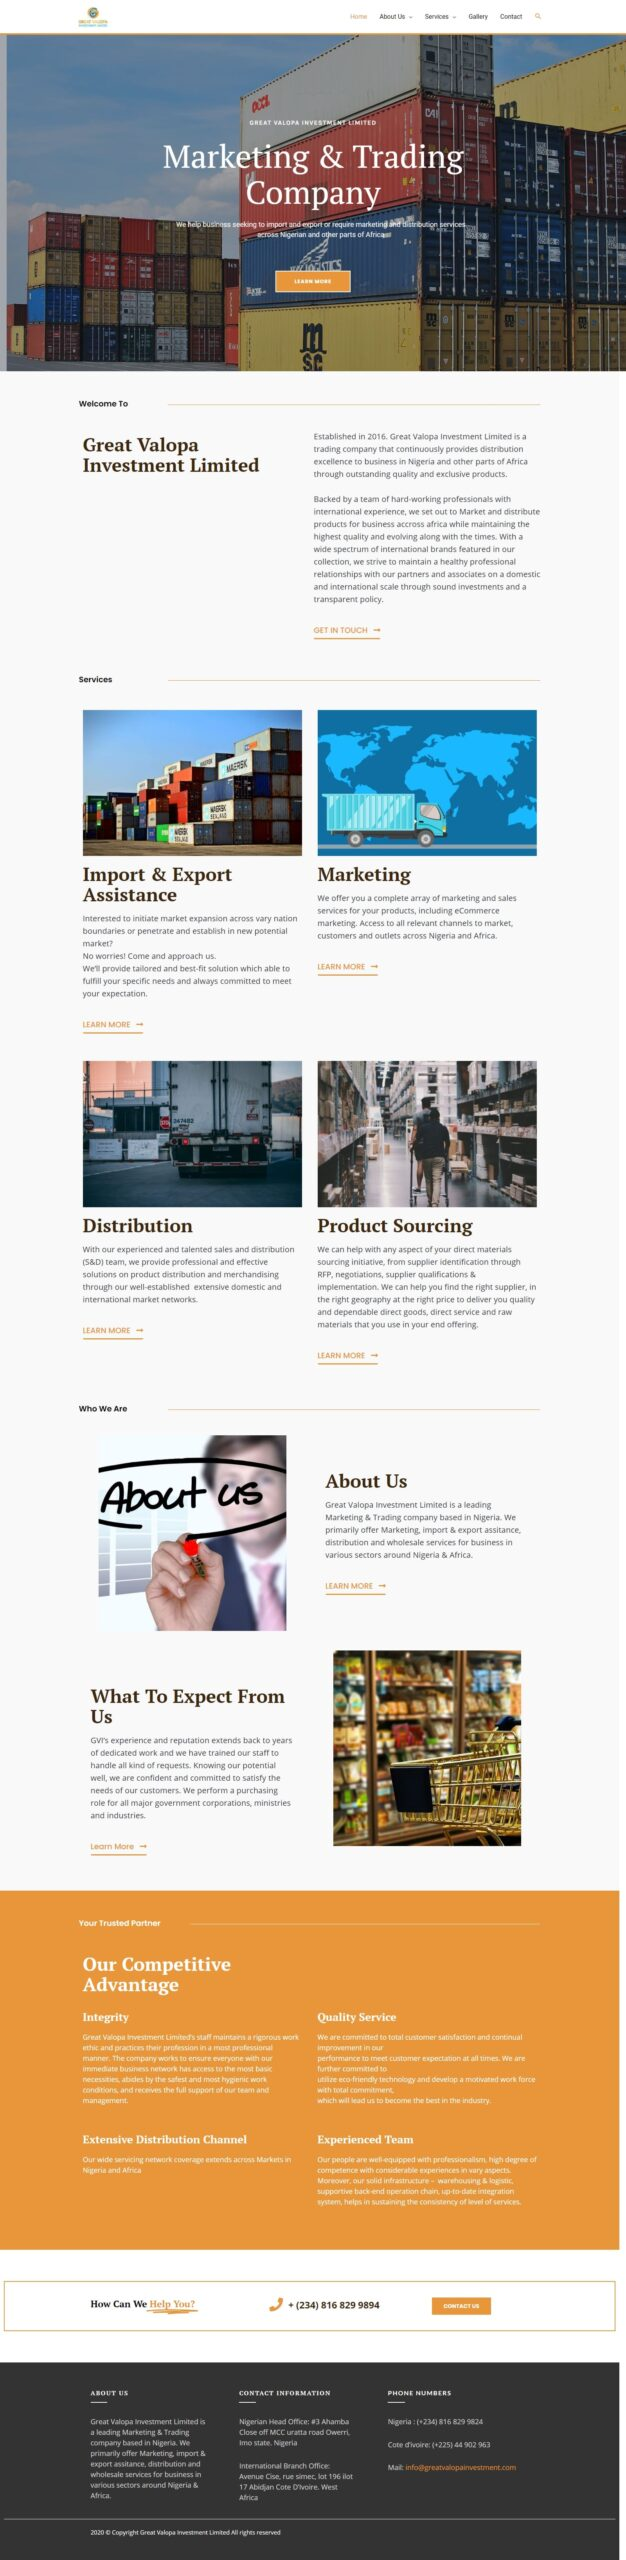 Homepage Great Valopa scaled